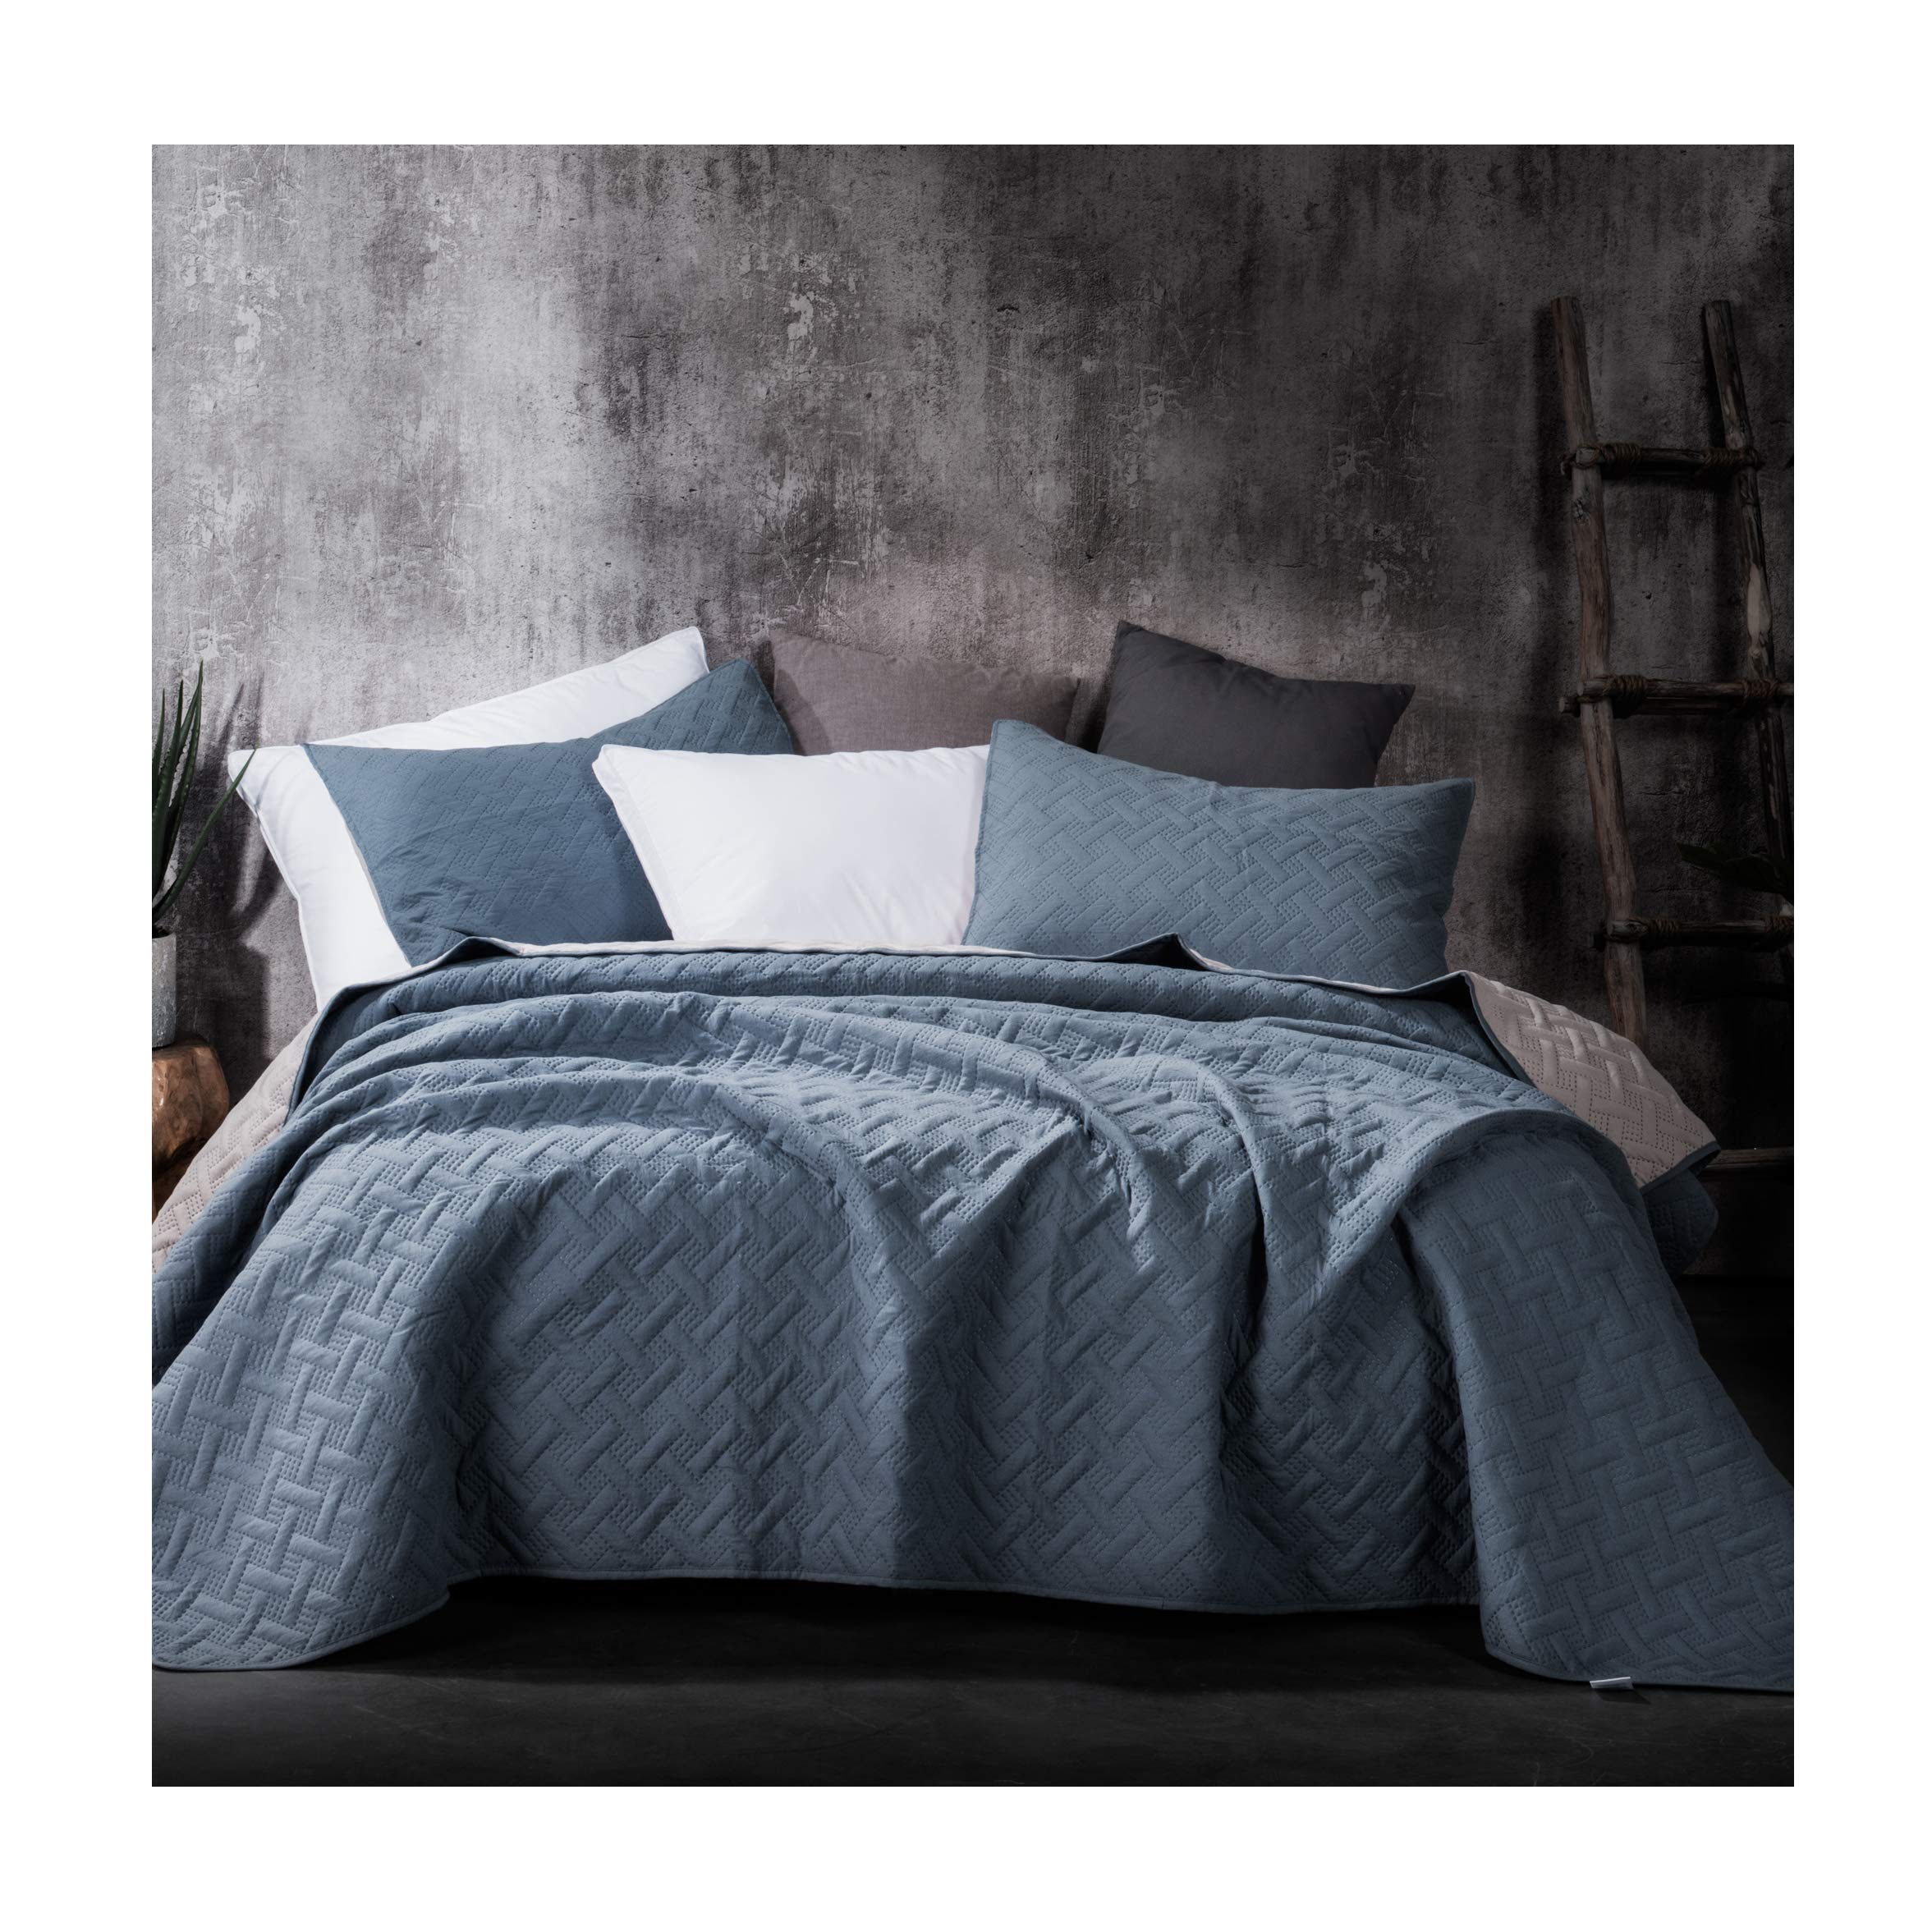 Kasentex Stone-Washed Ultra Soft Microfiber 3-Pc Bedding Set #1 Best Summer Lightweight Quilt Comforter Contemporary 2-Tone Reversible Color, Full/Queen + 2 Shams, Indigo Light/Cement Grey